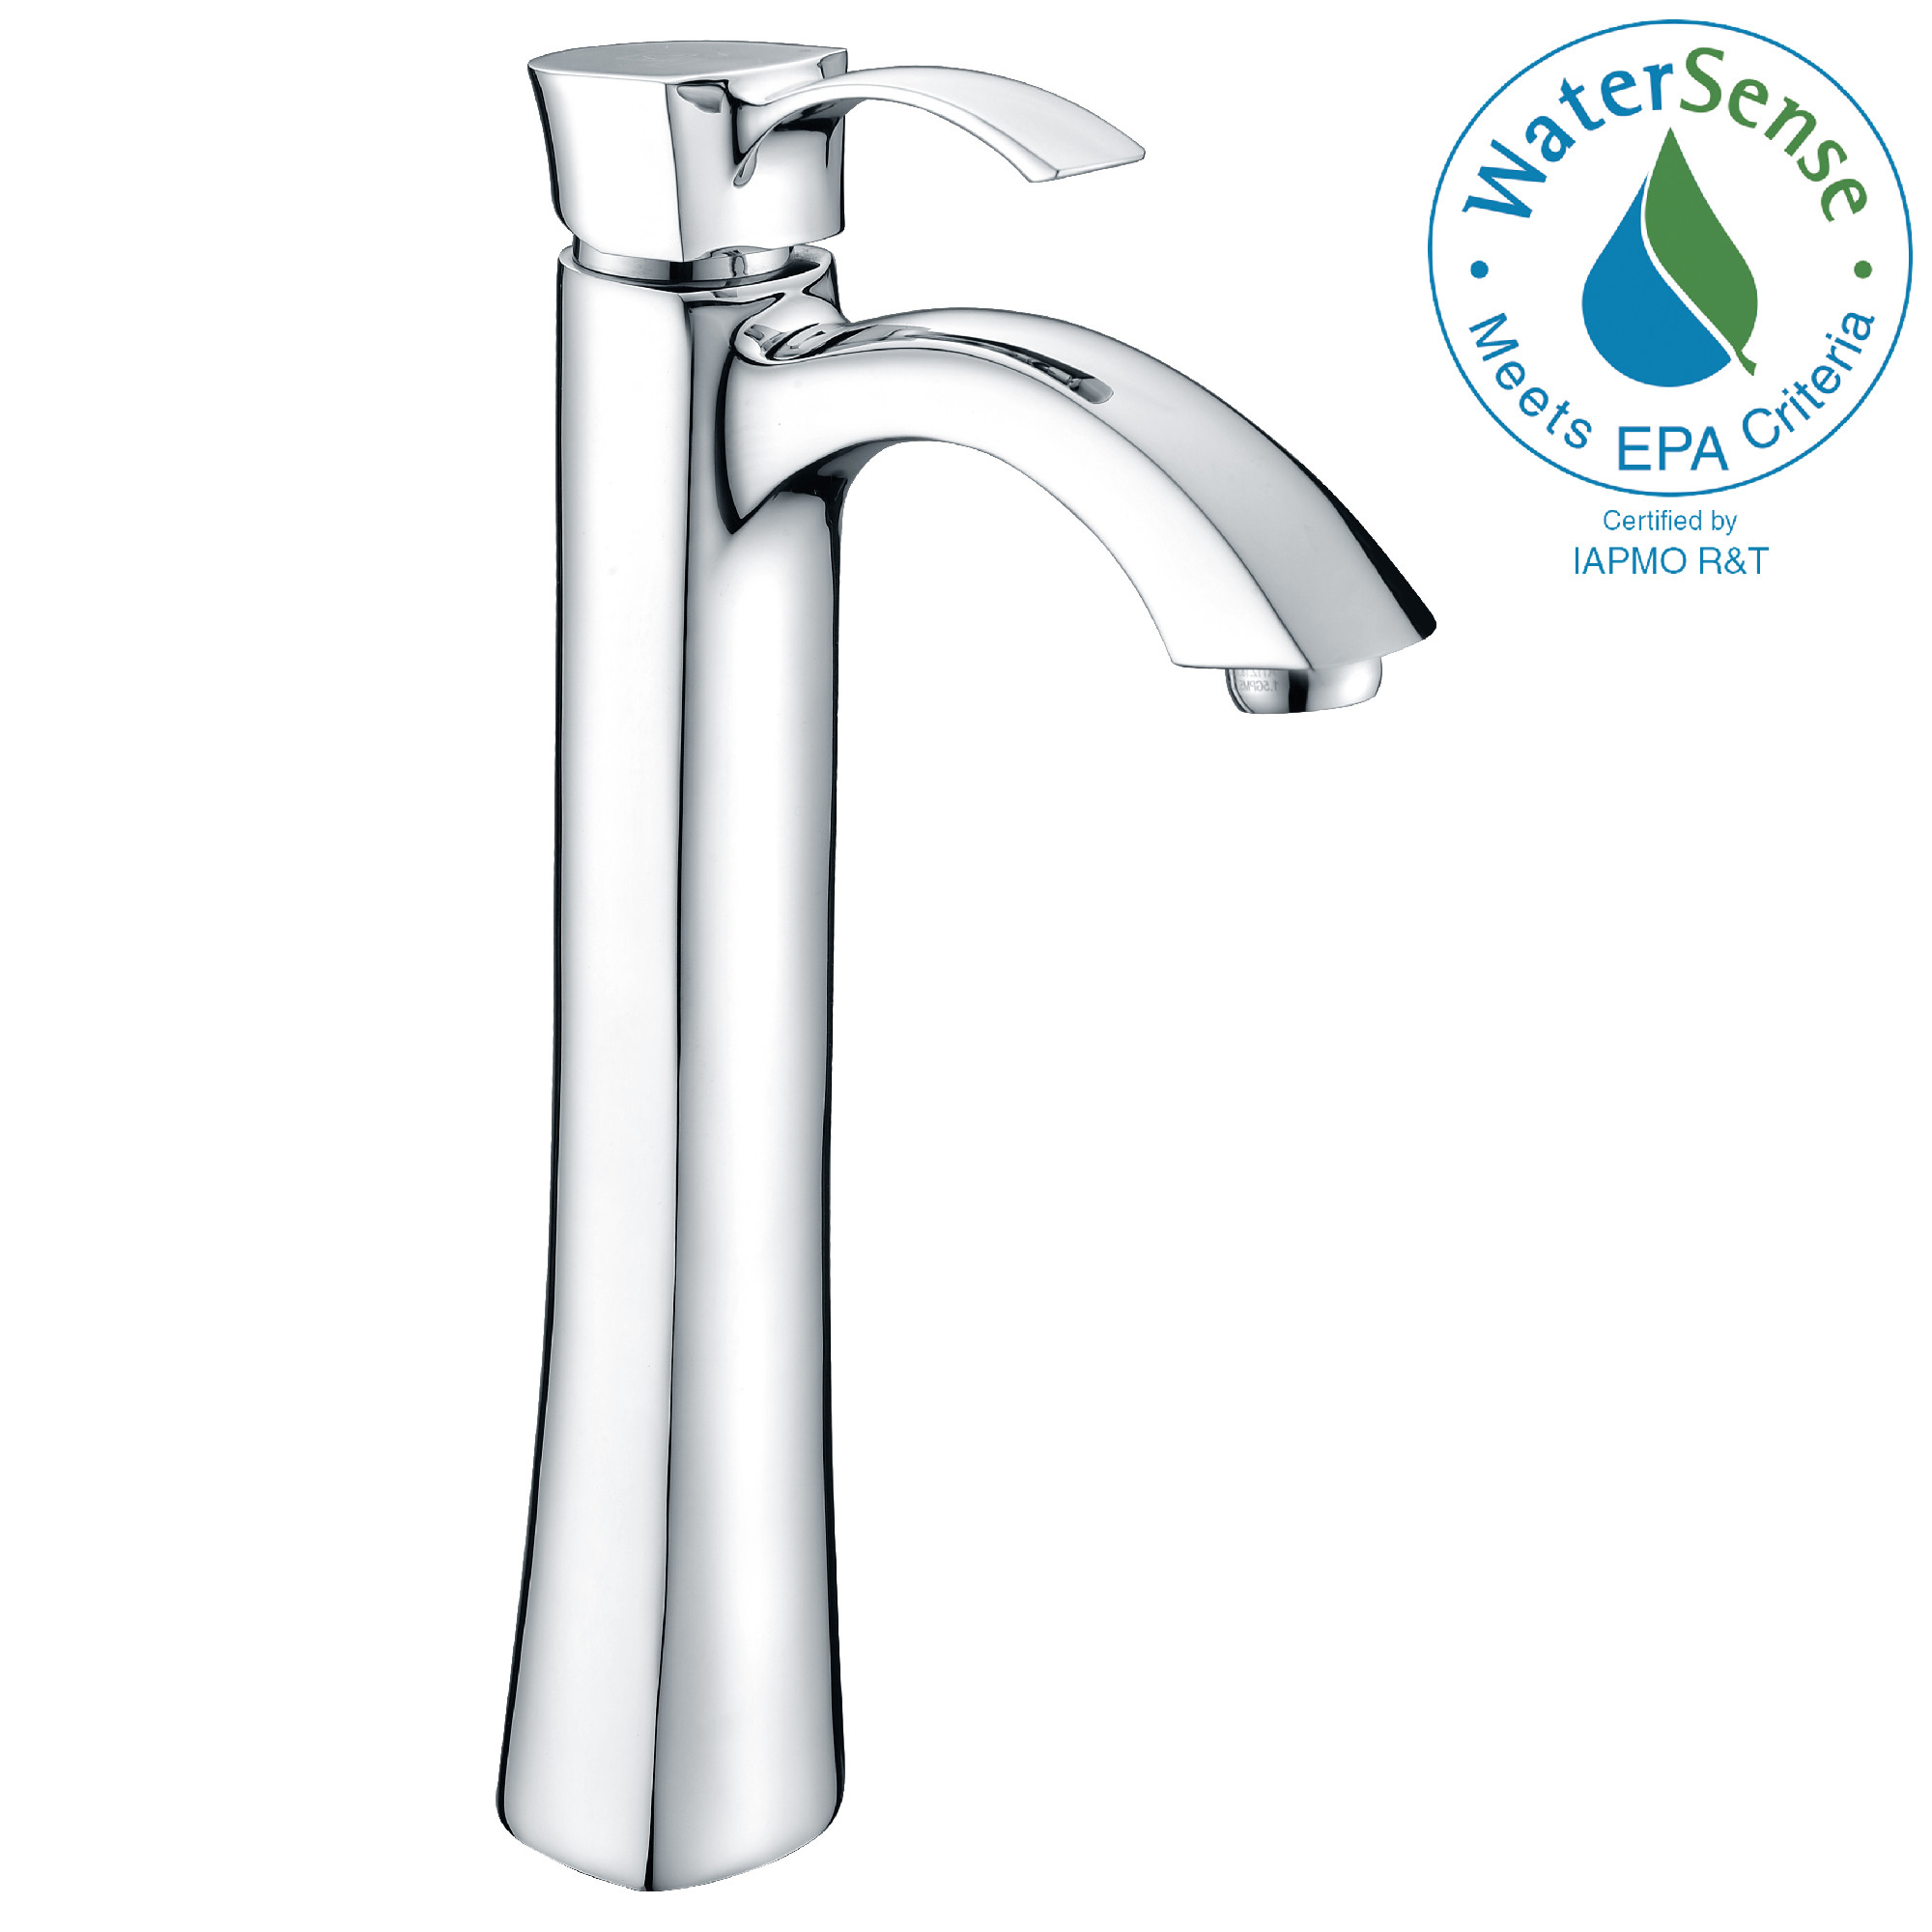 ANZZI L-AZ095 Harmony Series Single Handle Vessel Faucet In Polished Chrome